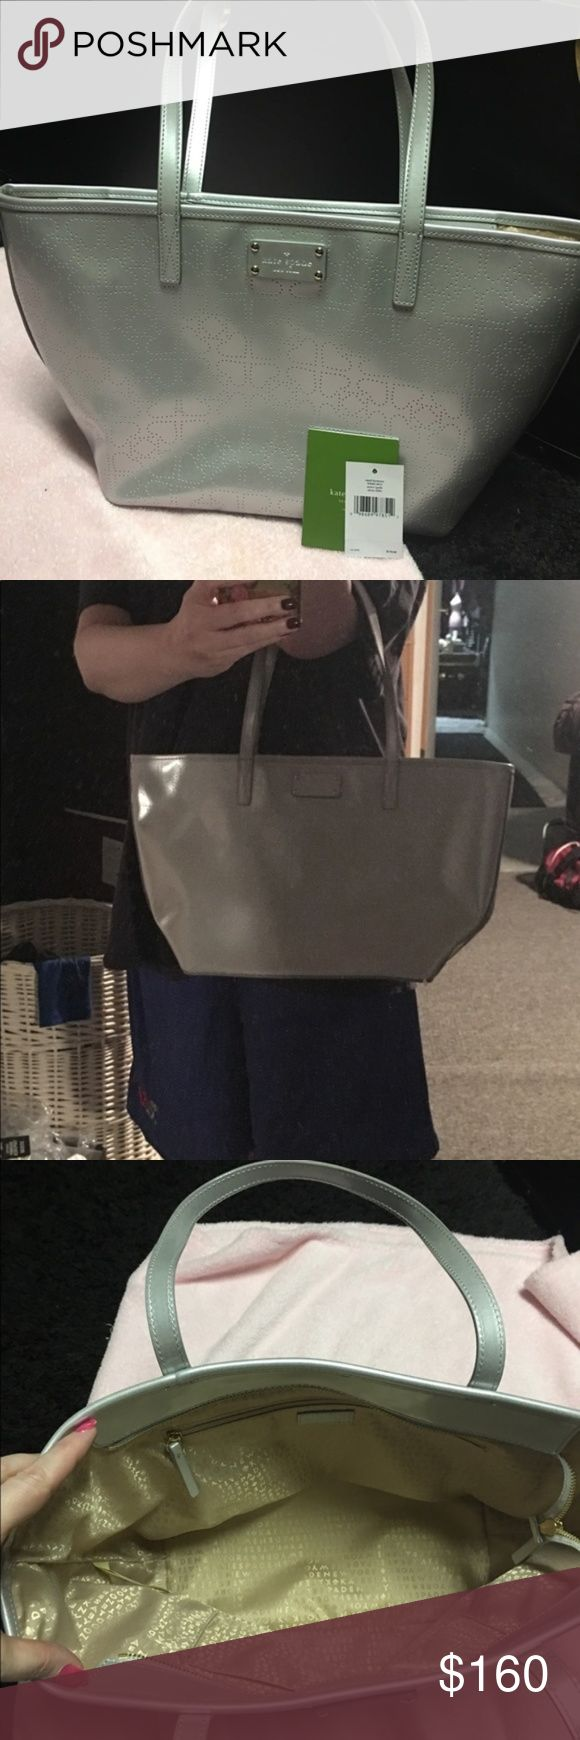 NWT Kate Spade Small Harmony Metro Silver Tote Bag New with tags! SIZE: 17 x 10  Gorgeous Kate Spade tote. Excellent condition inside and out. Very spacious. Open to reasonable offers! kate spade Bags